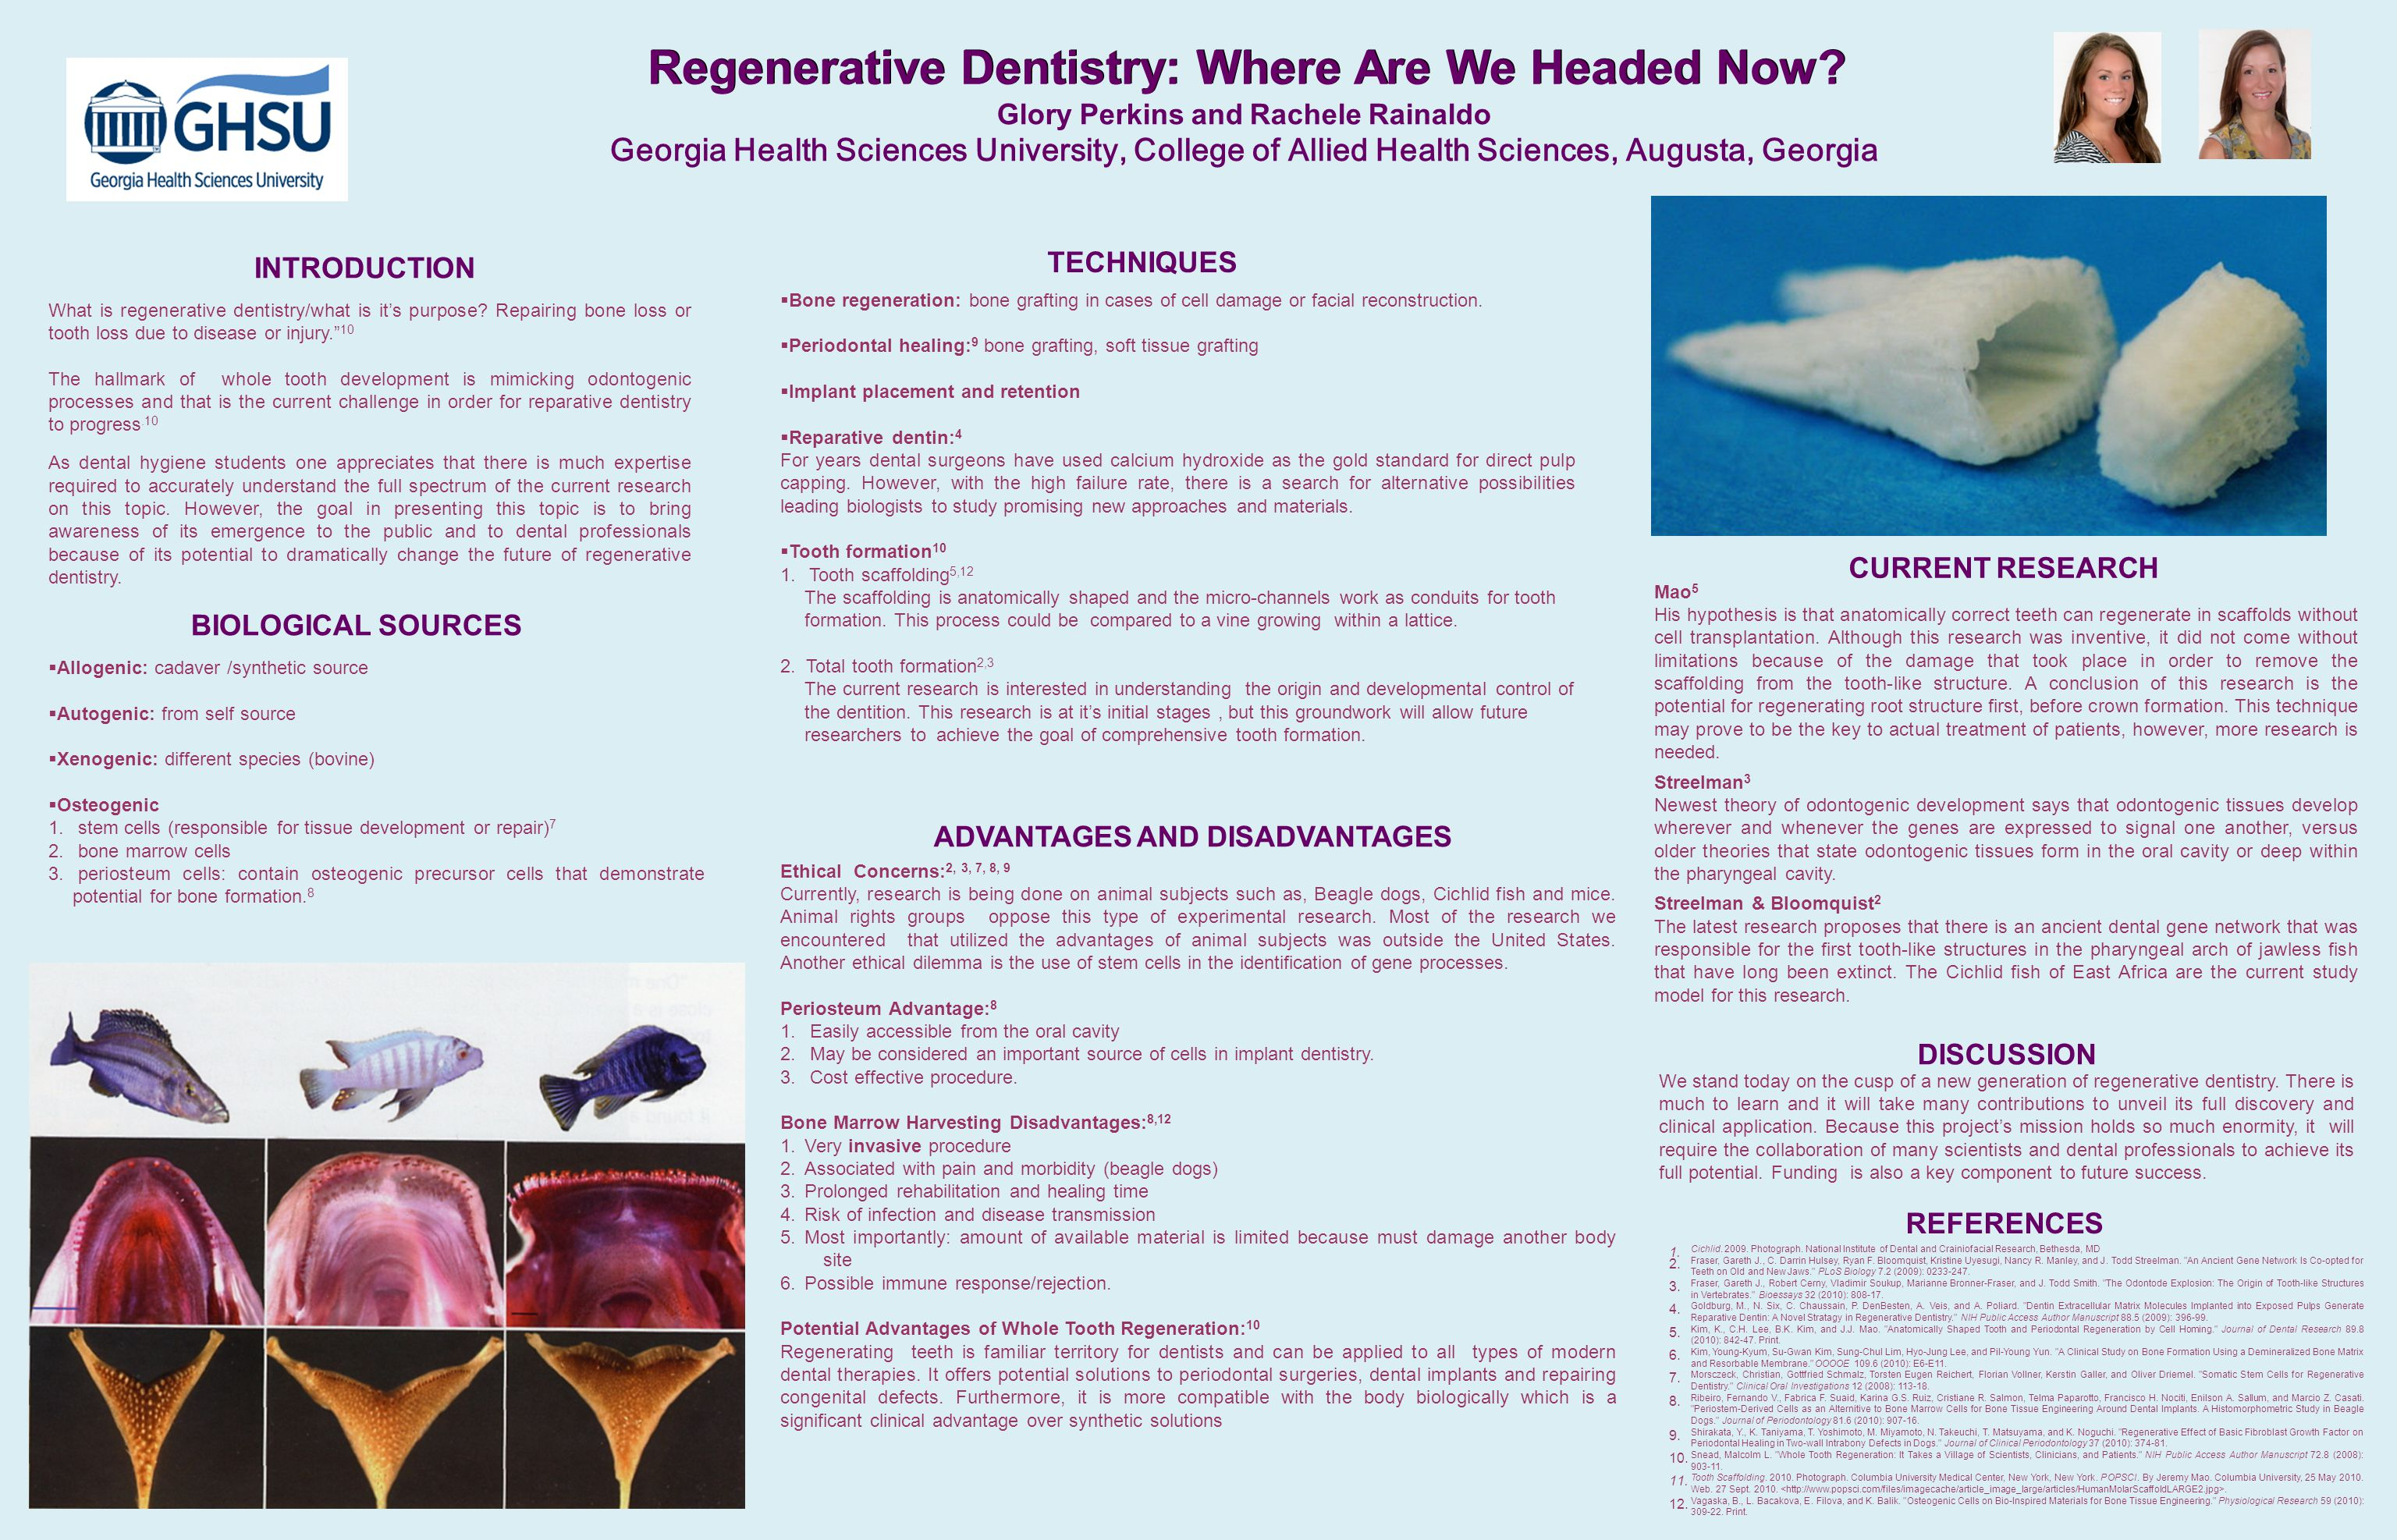 Regenerative Dentistry: Where Are We Headed Now.